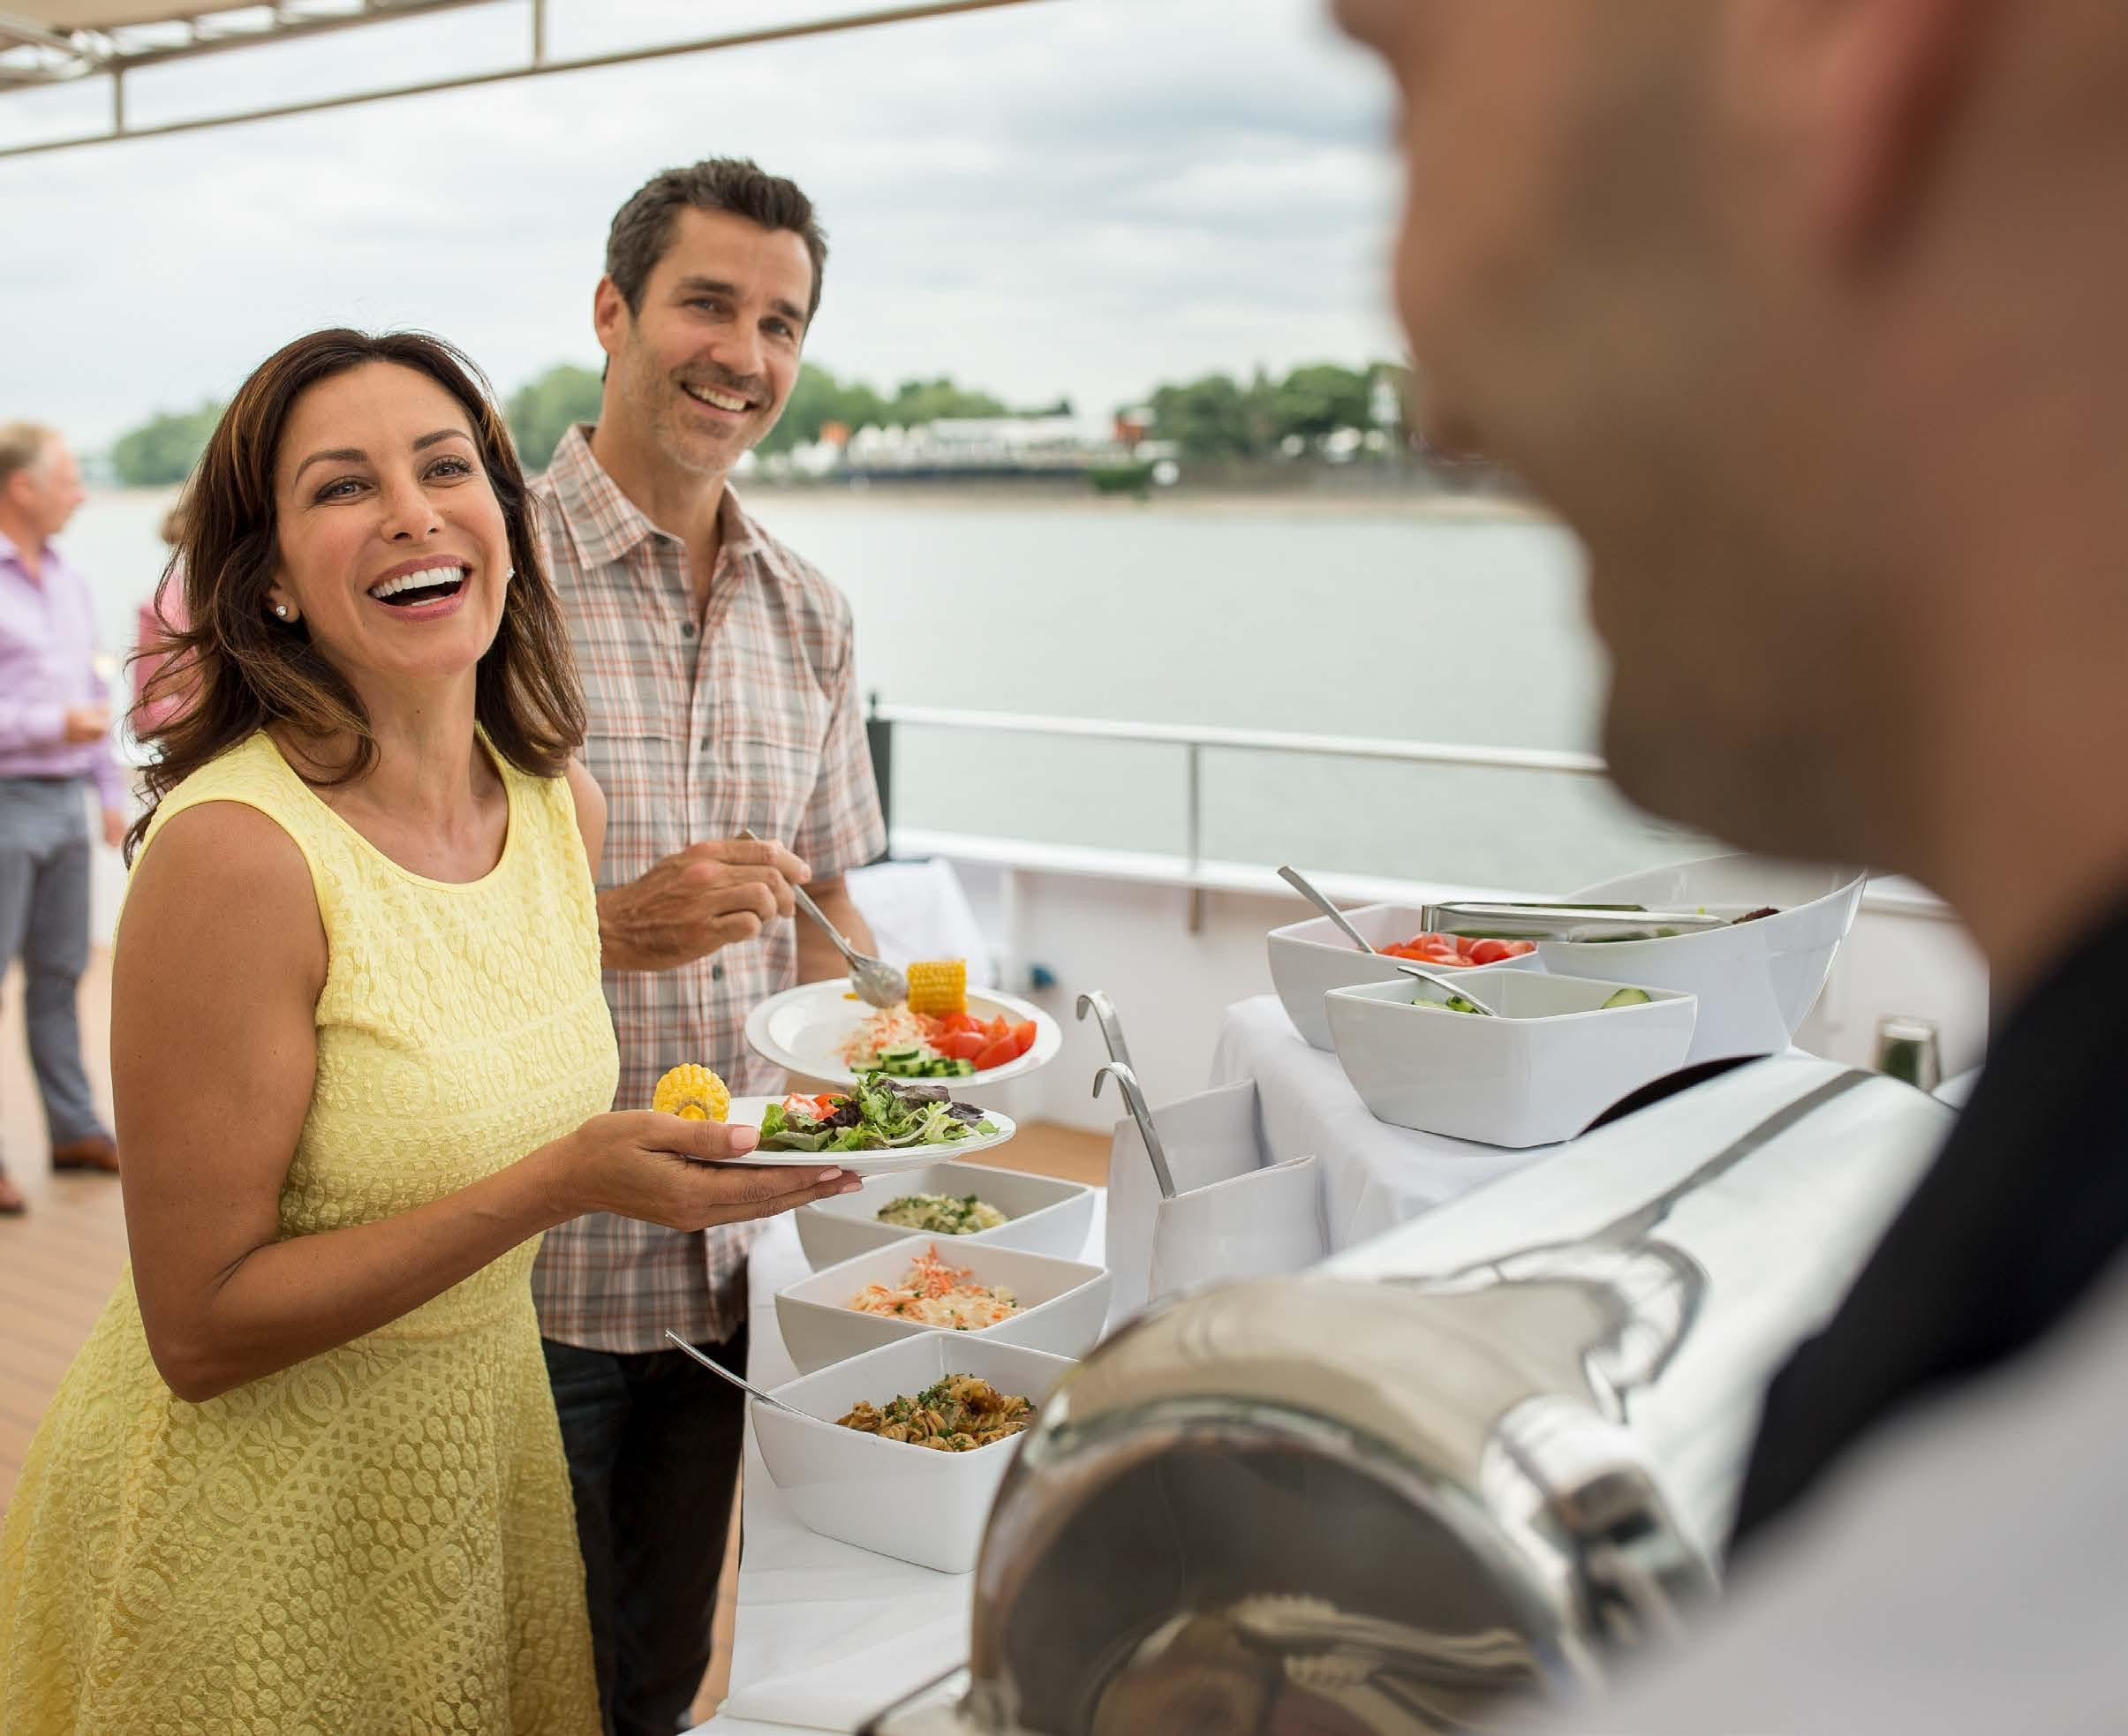 Page 26 of AVALON WATERWAYS: DELIGHT IN EVERY BITE